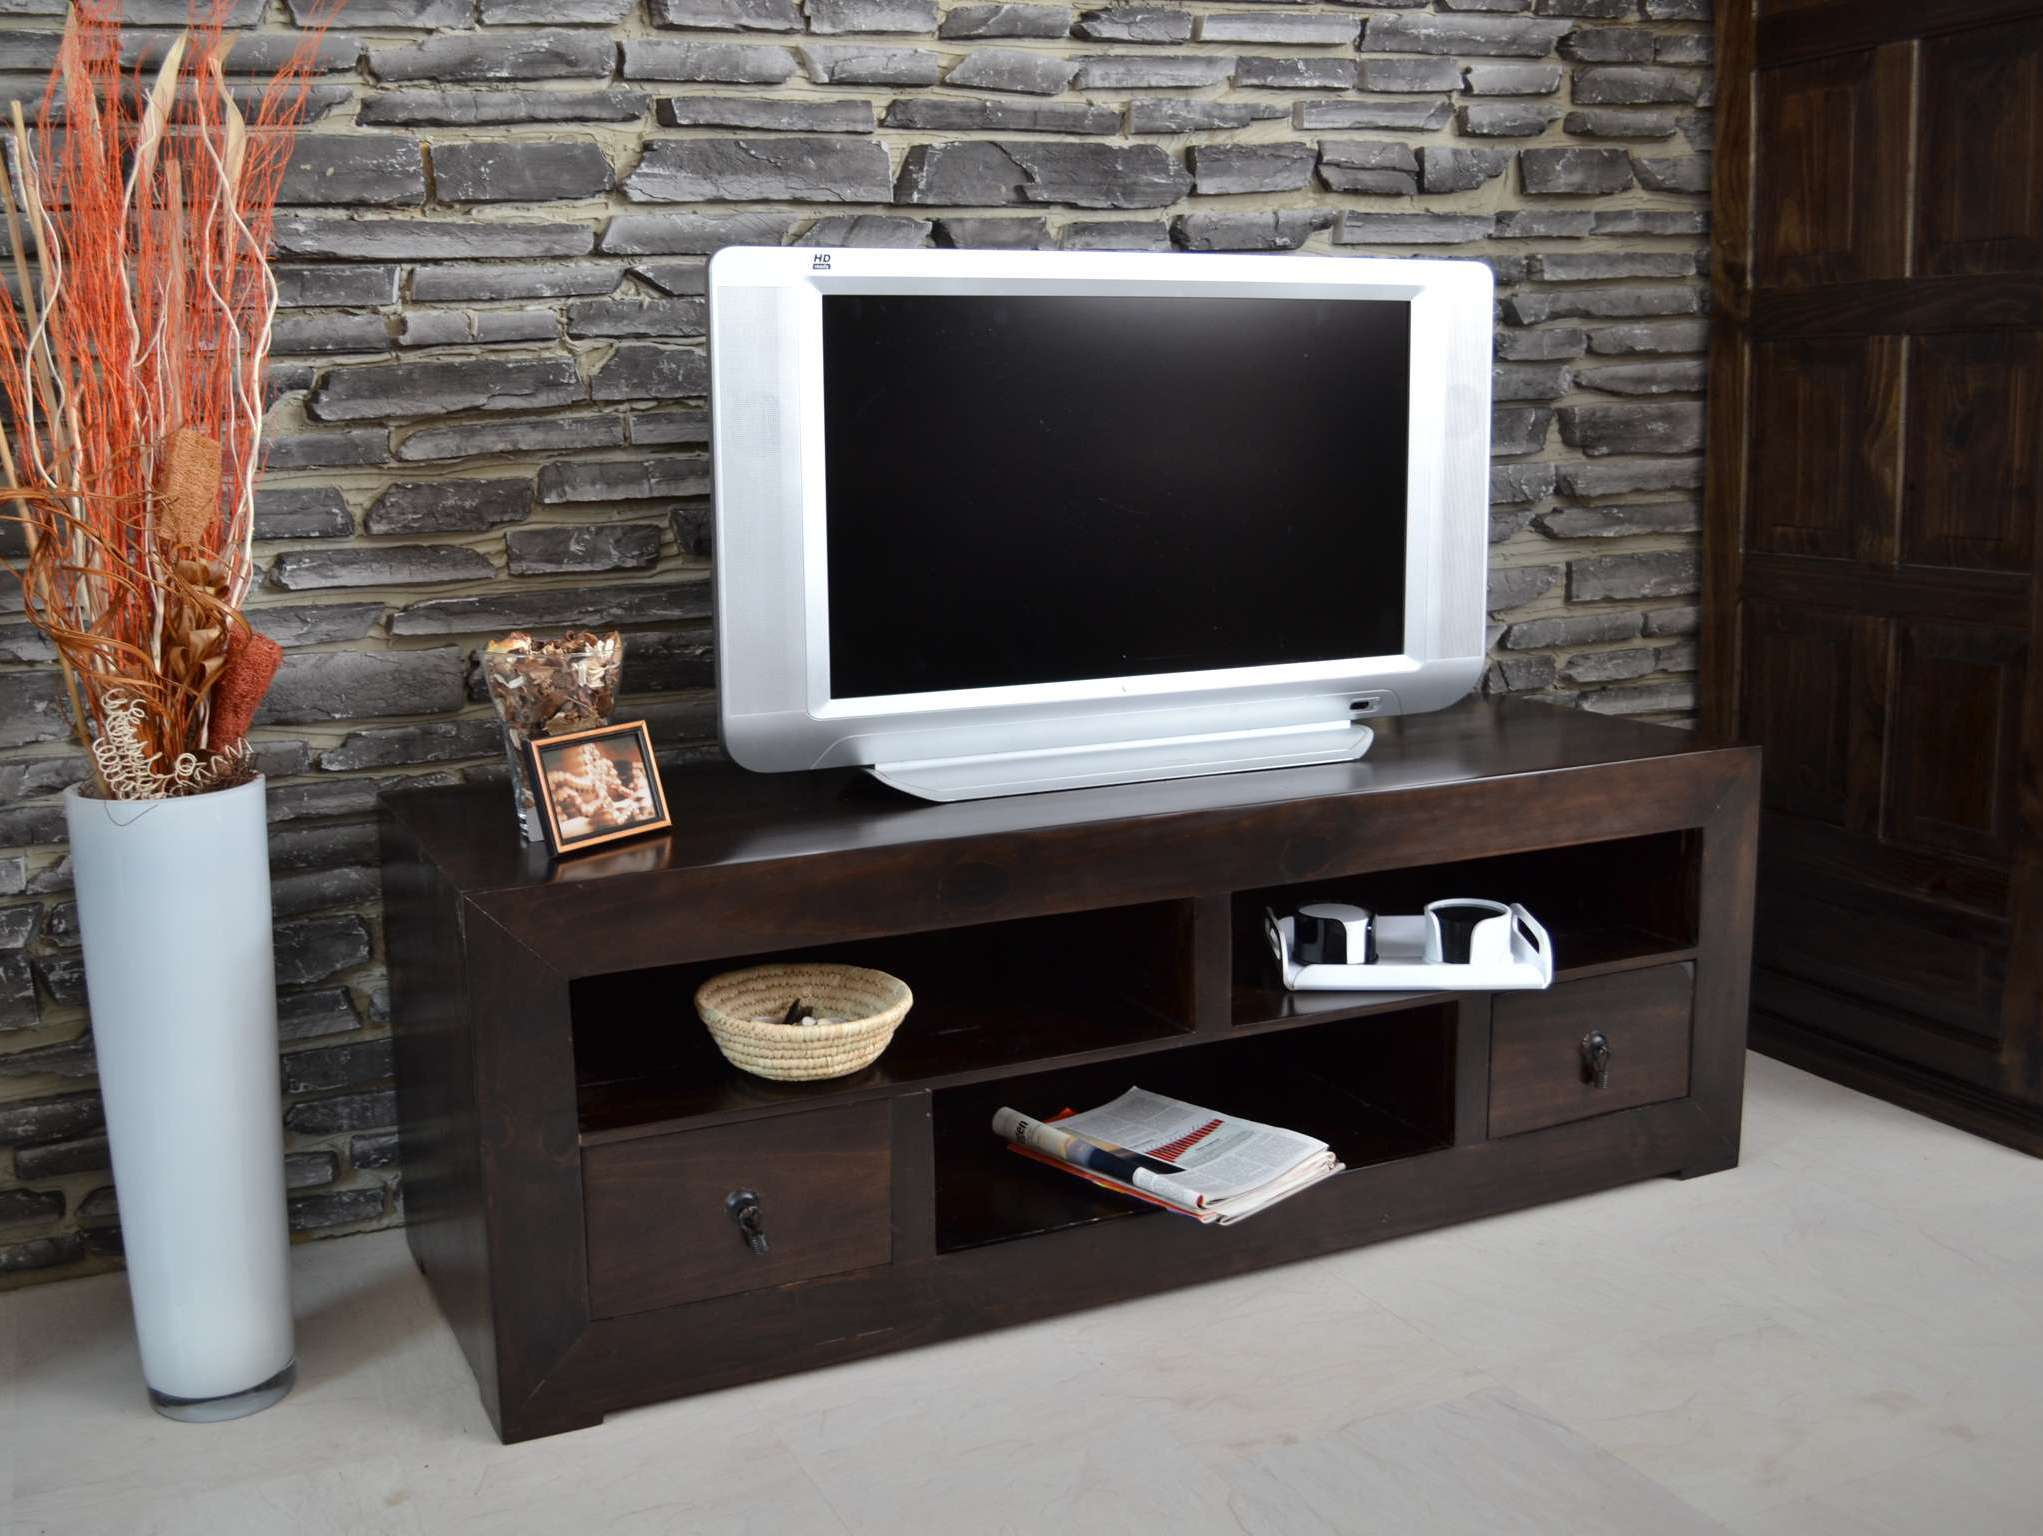 mexico tv kommode massivholz m bel pinie kolonialstil 10542 mexiko ebay. Black Bedroom Furniture Sets. Home Design Ideas